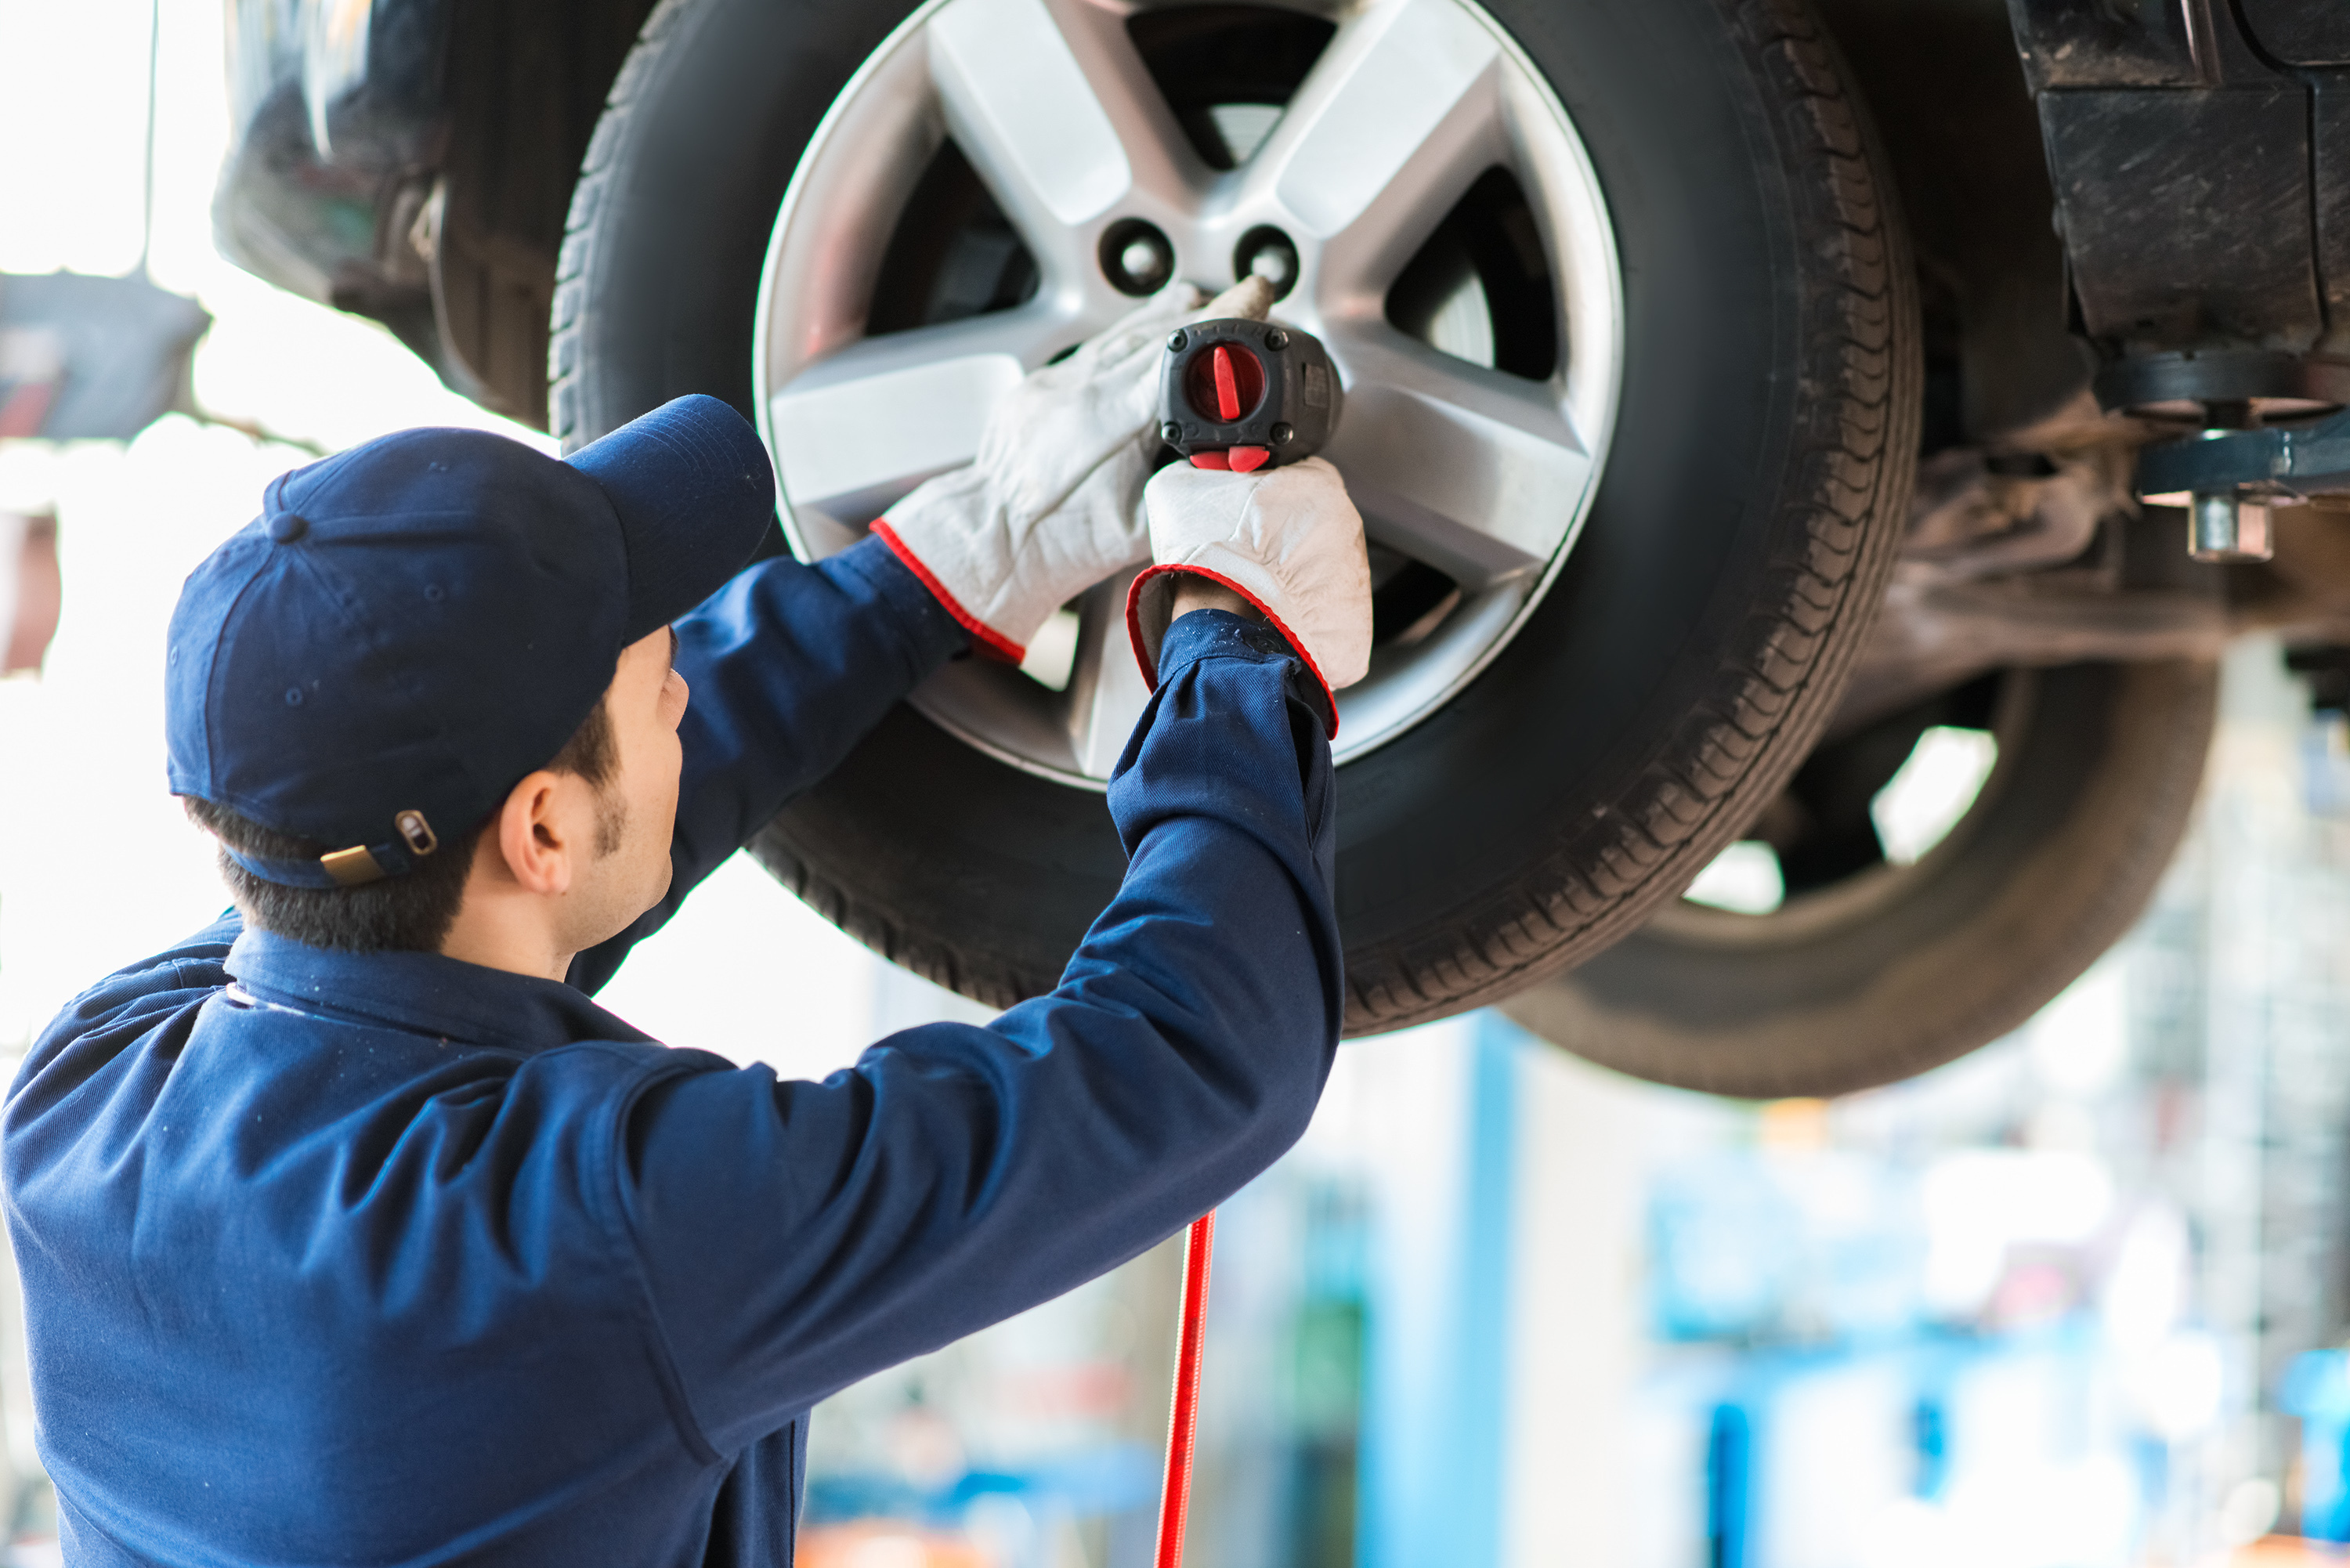 Powers is proficient in helping the auto repair industry